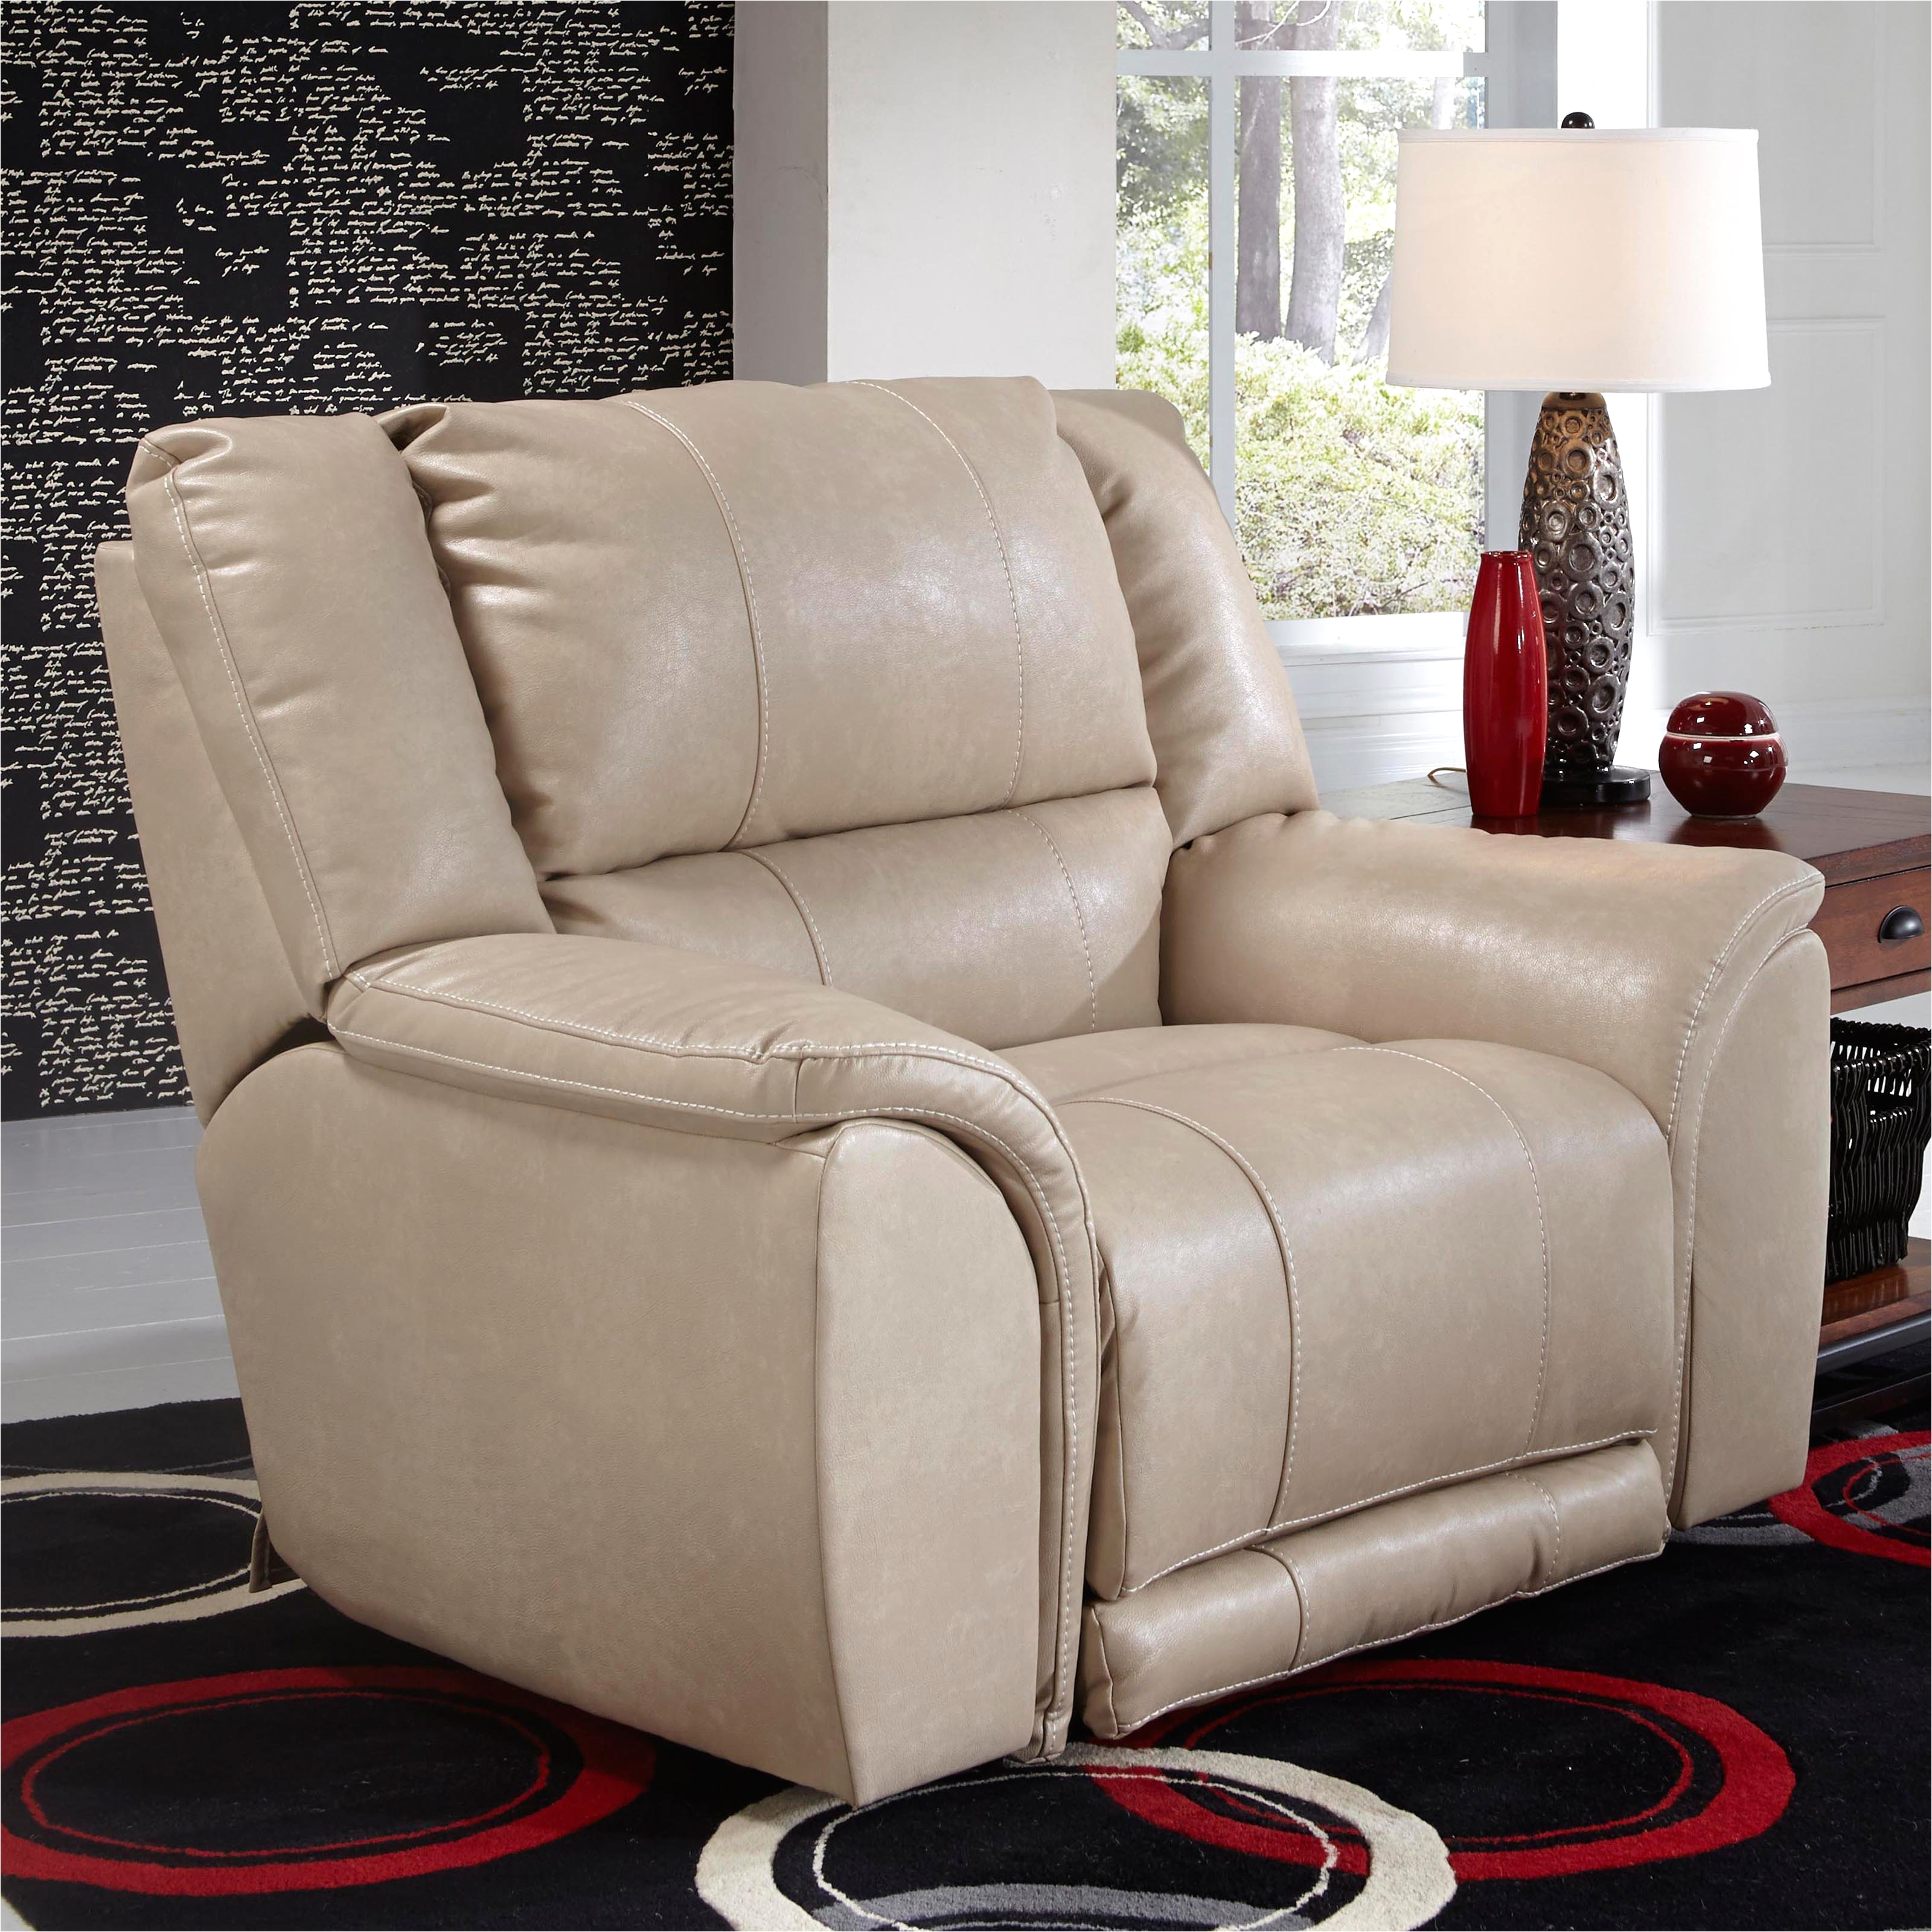 lay flat recliner chairs rocking office chair uk 50 awesome reclining sofa images photos home improvement